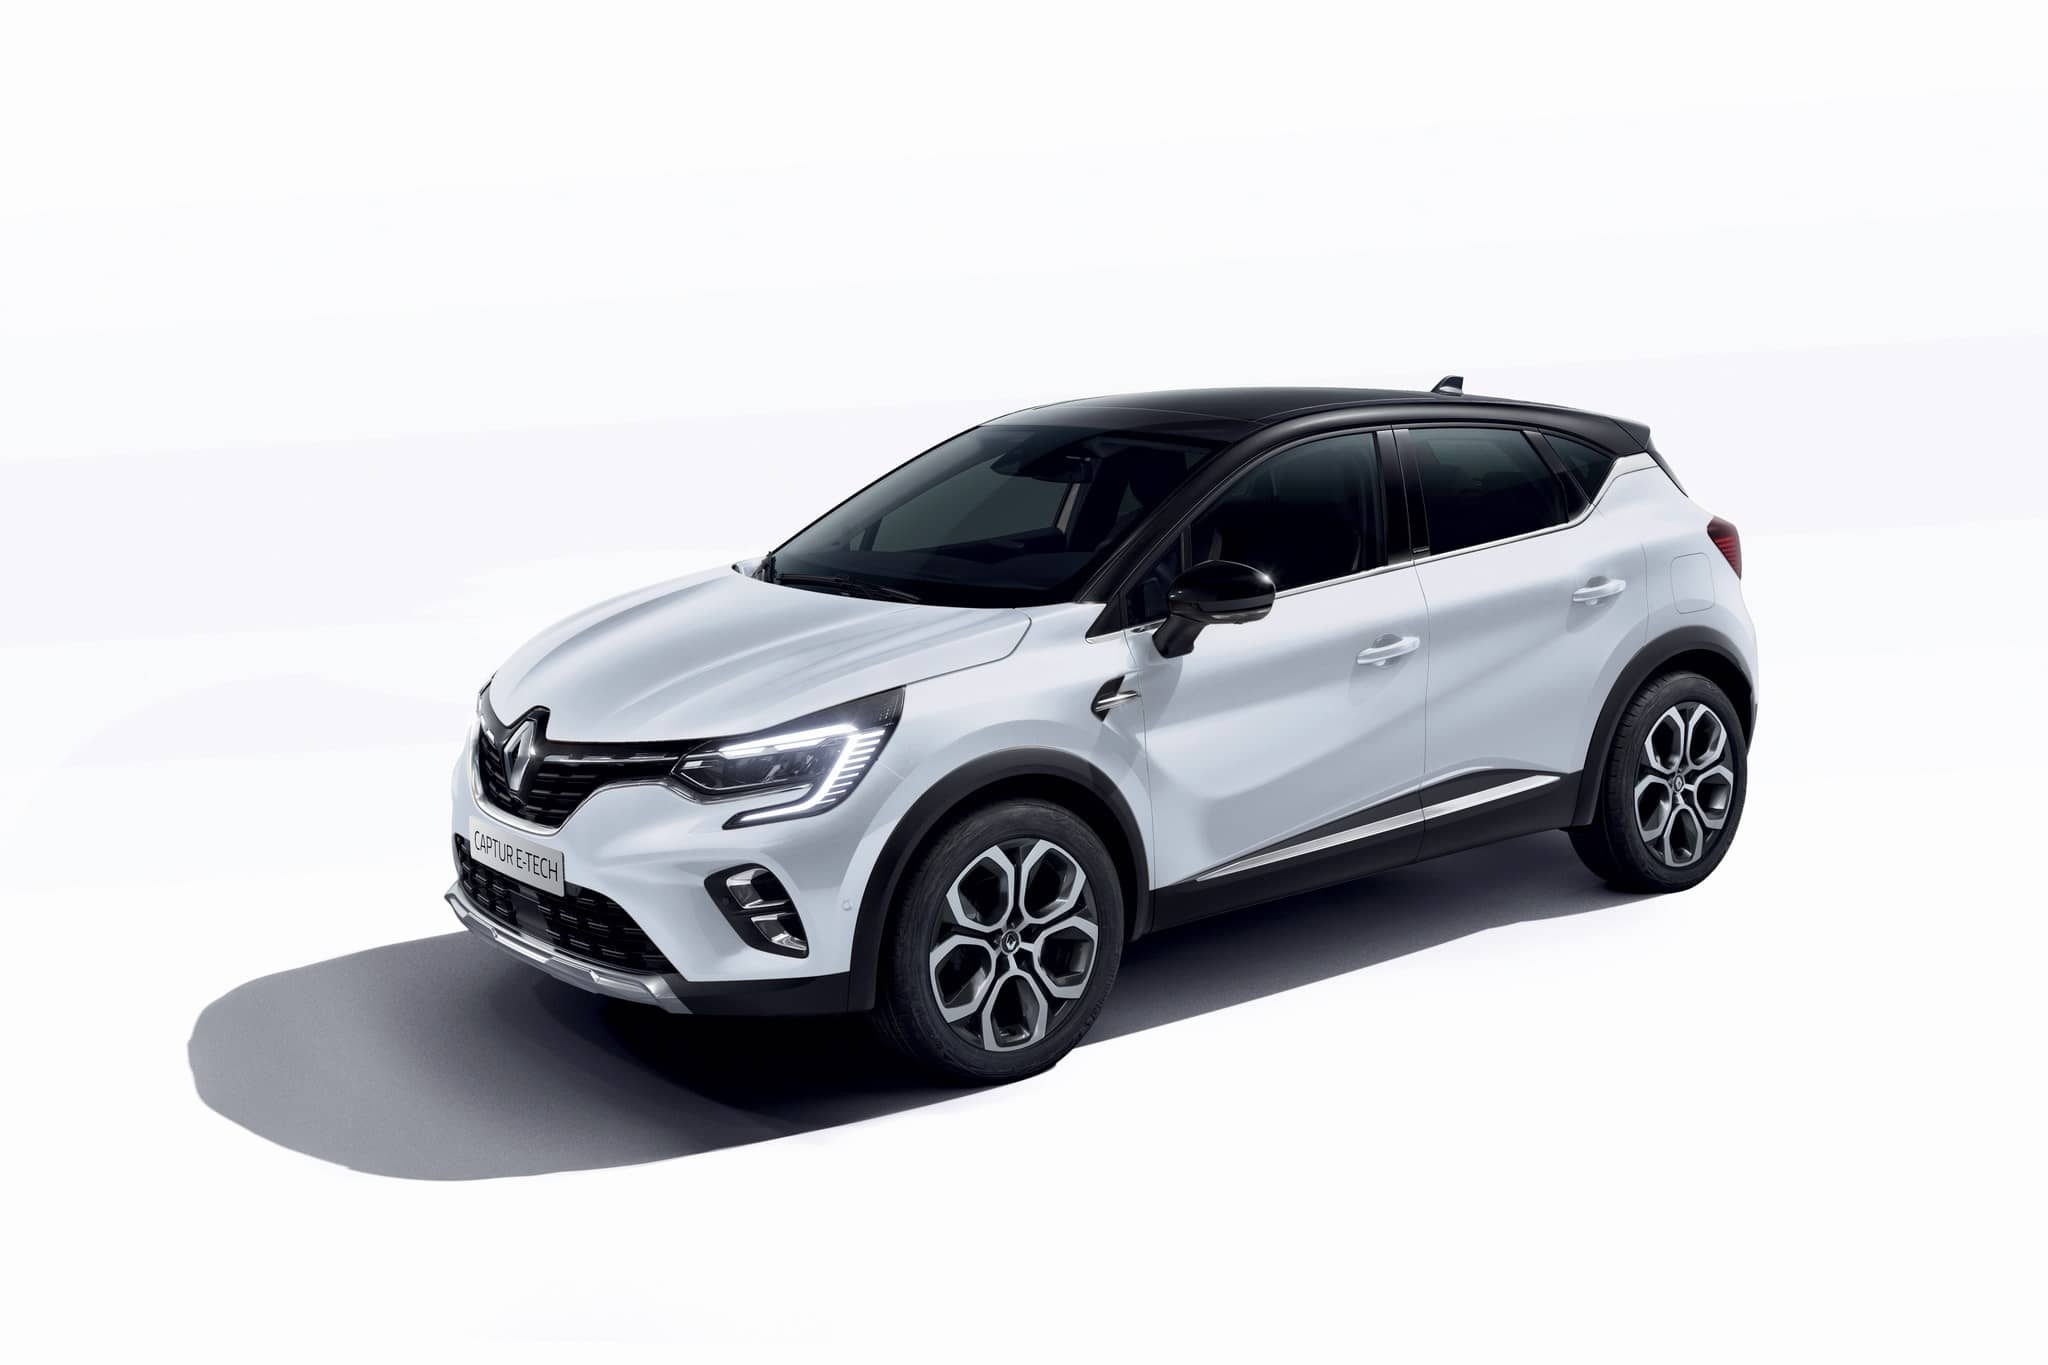 mini-2020 – New Renault CAPTUR E-TECH Plug-in (8)